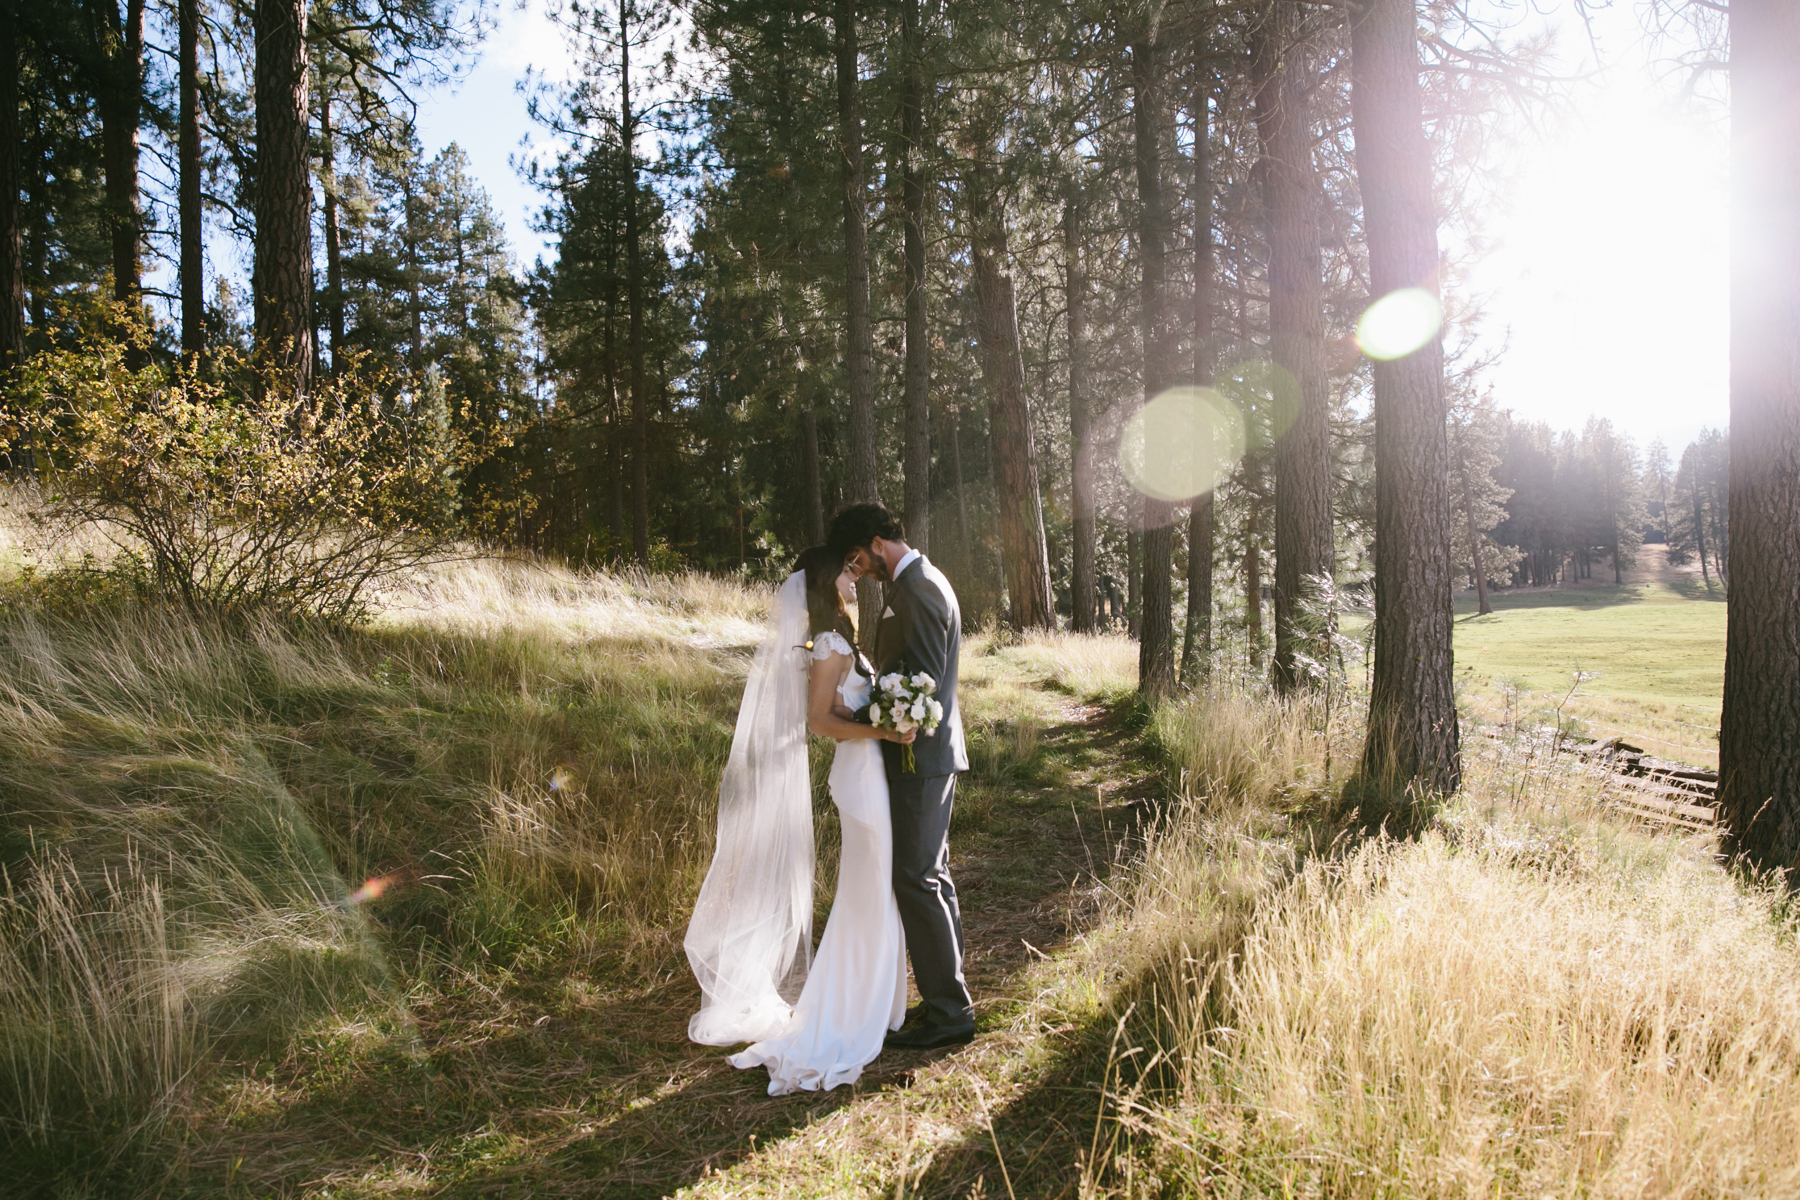 houseonmetoliuswedding-753.jpg